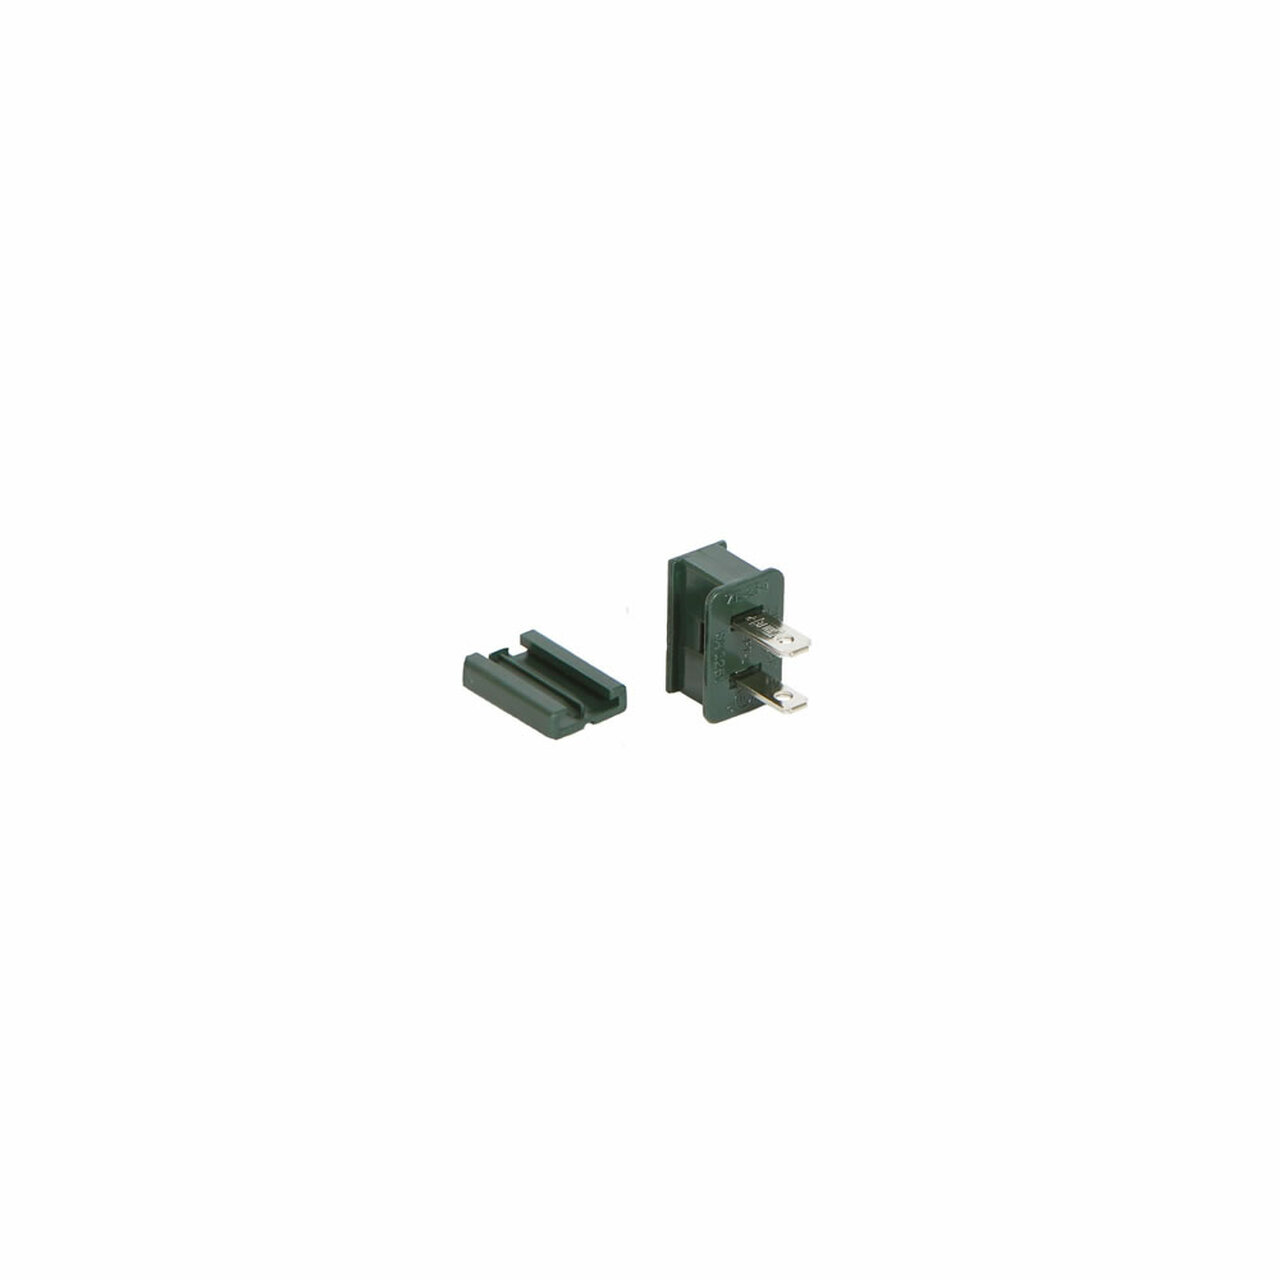 Green Male Quick Zip Plug For SPT-1 18 Gauge Wire 8 Amps | Christmas ...